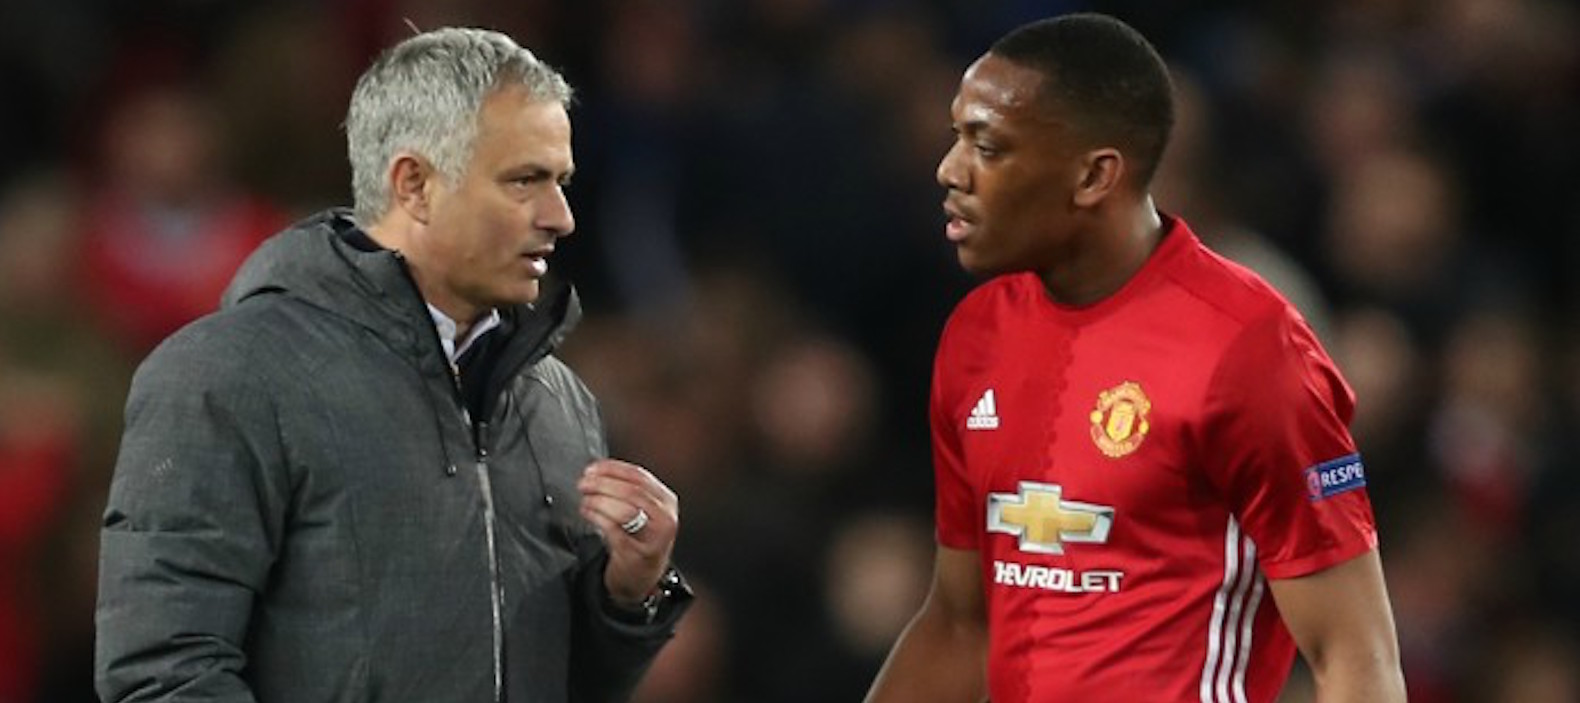 Man Utd News: Why Jose Mourinho wanted to get rid off Anthony Martial?